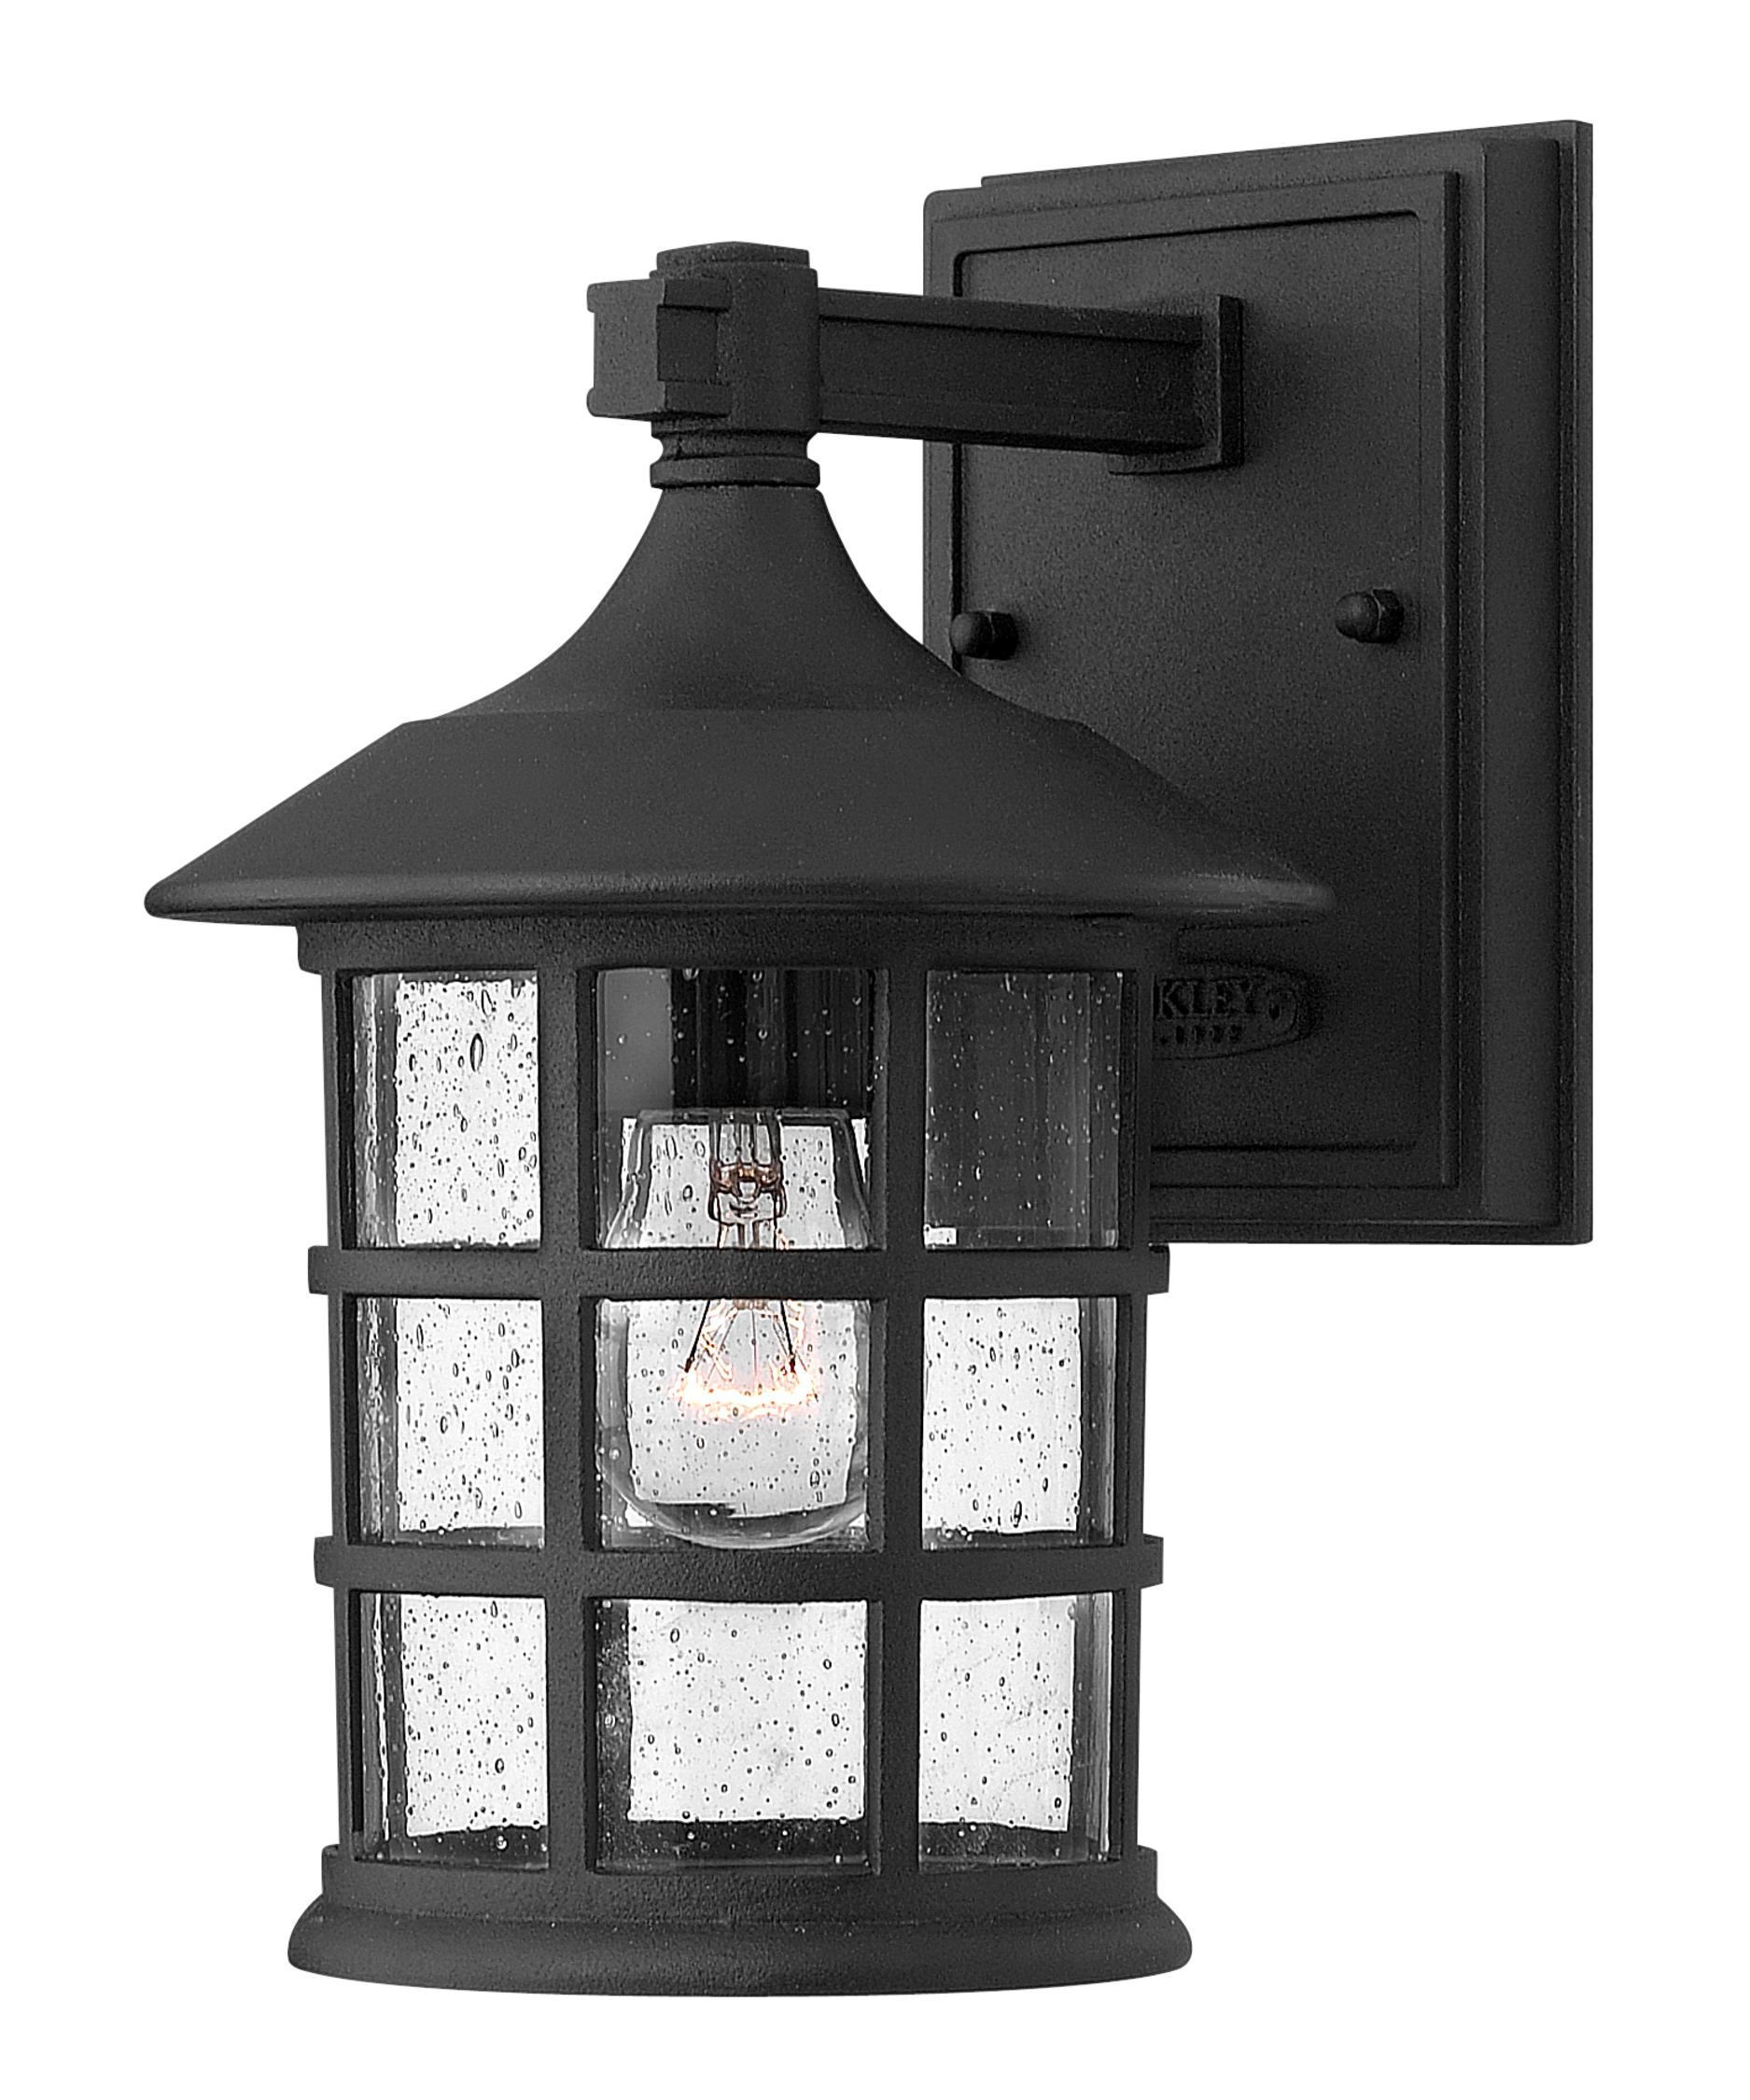 Hinkley Lighting 1800 Freeport 6 Inch Wide 1 Light Outdoor Wall Light |  Capitol Lighting 1 800lighting.com